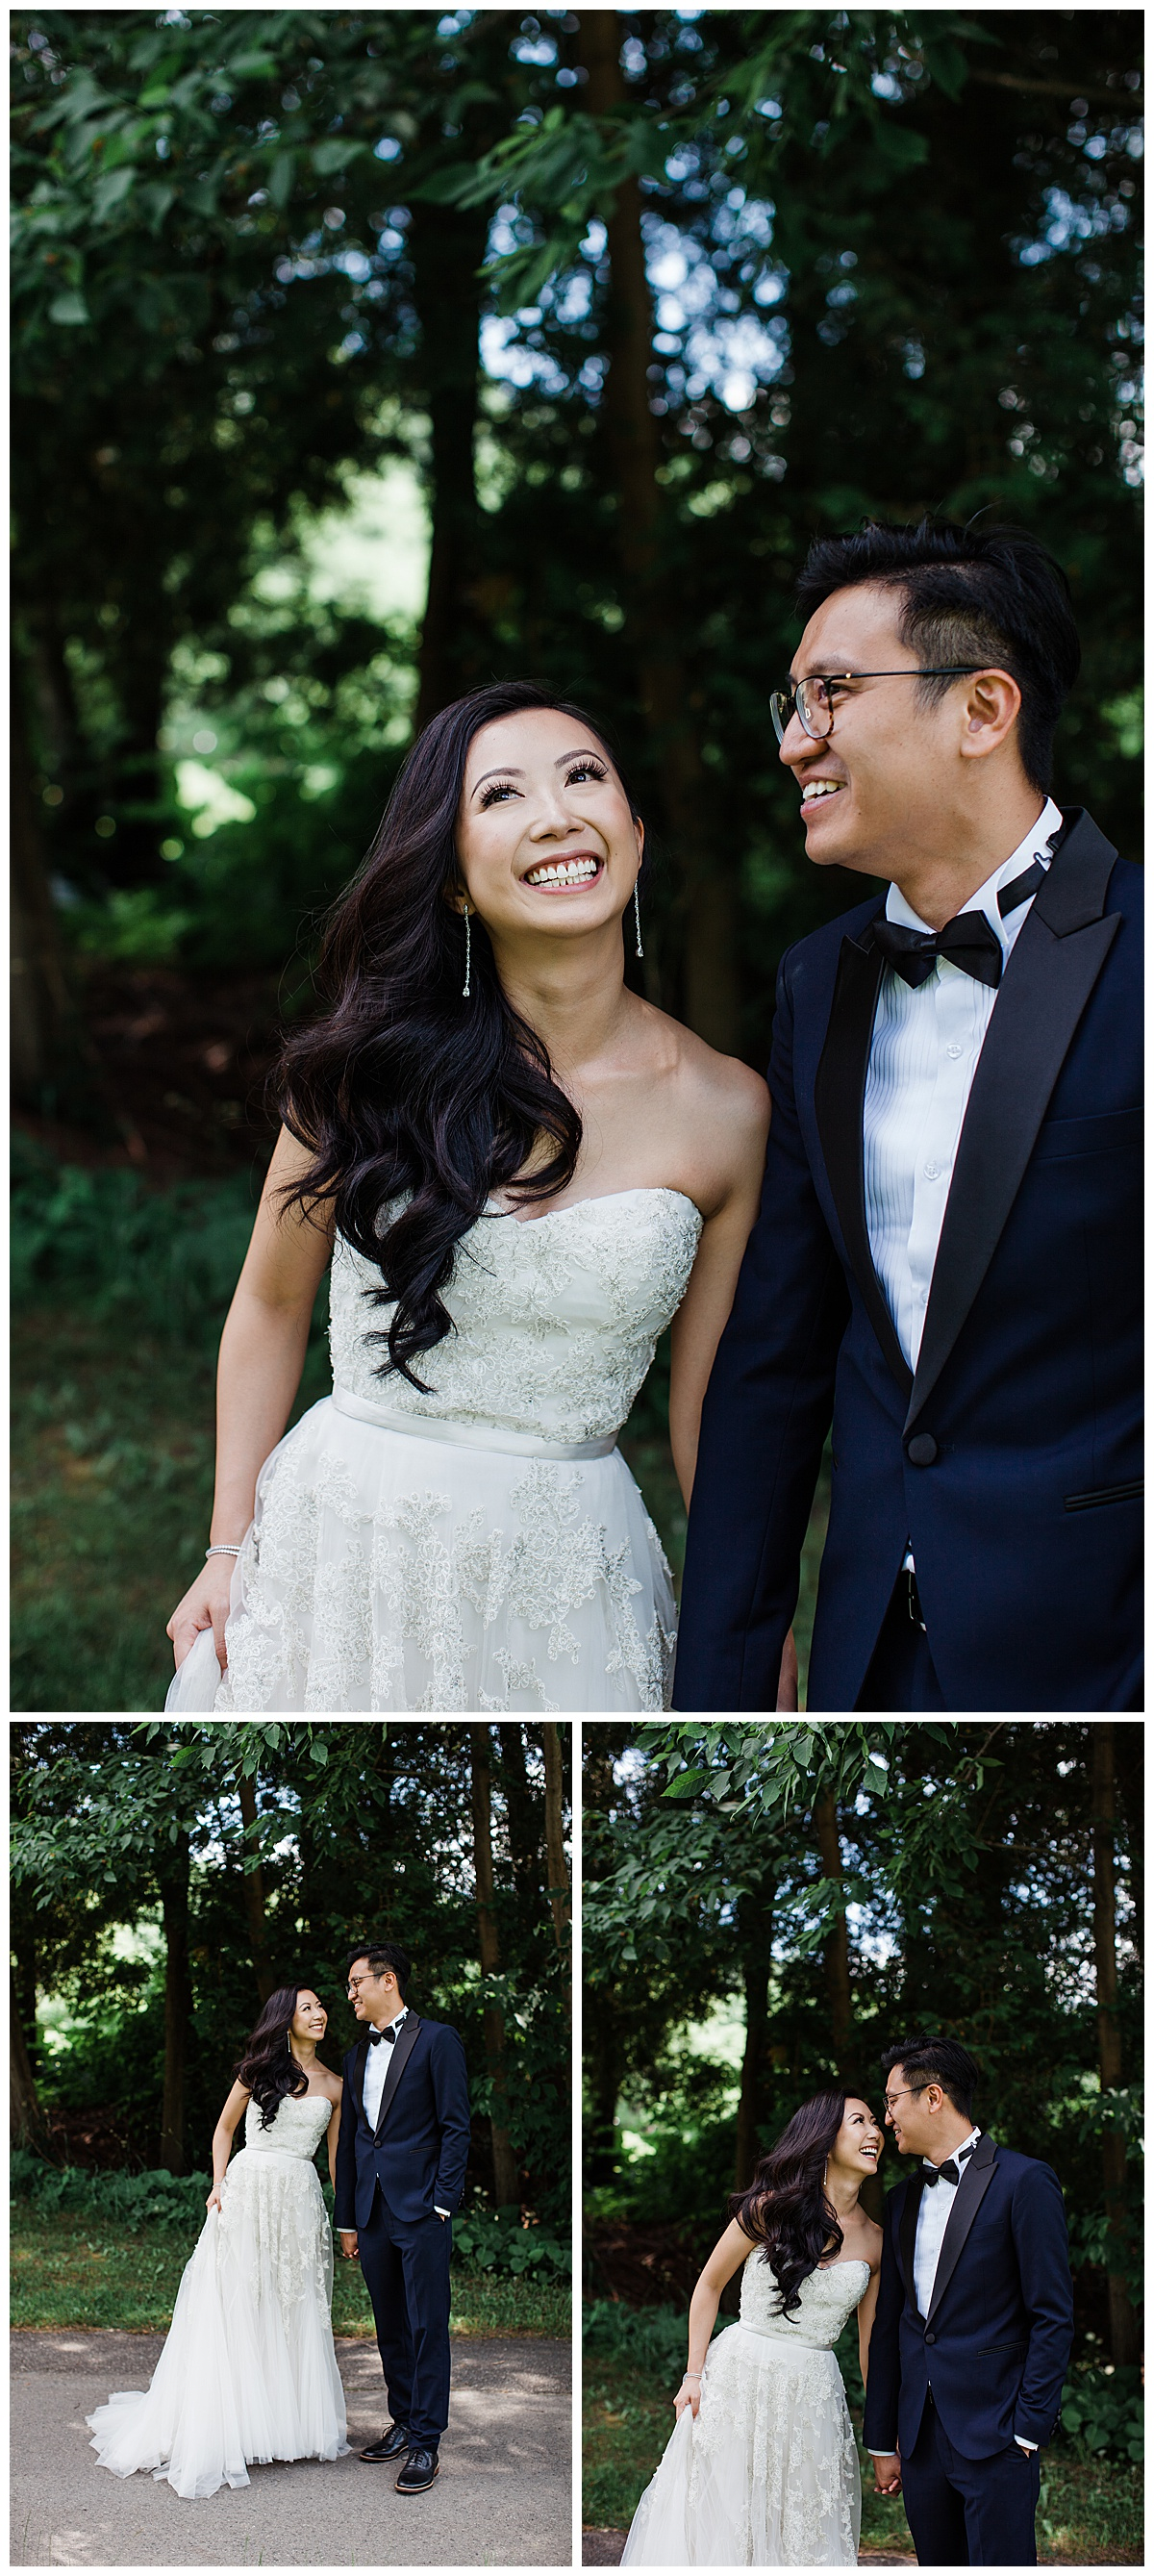 Bride and groom walking laughing and smiling| outdoor wedding| bride and groom portraits|first look| winery wedding| Toronto photographer|  3photography